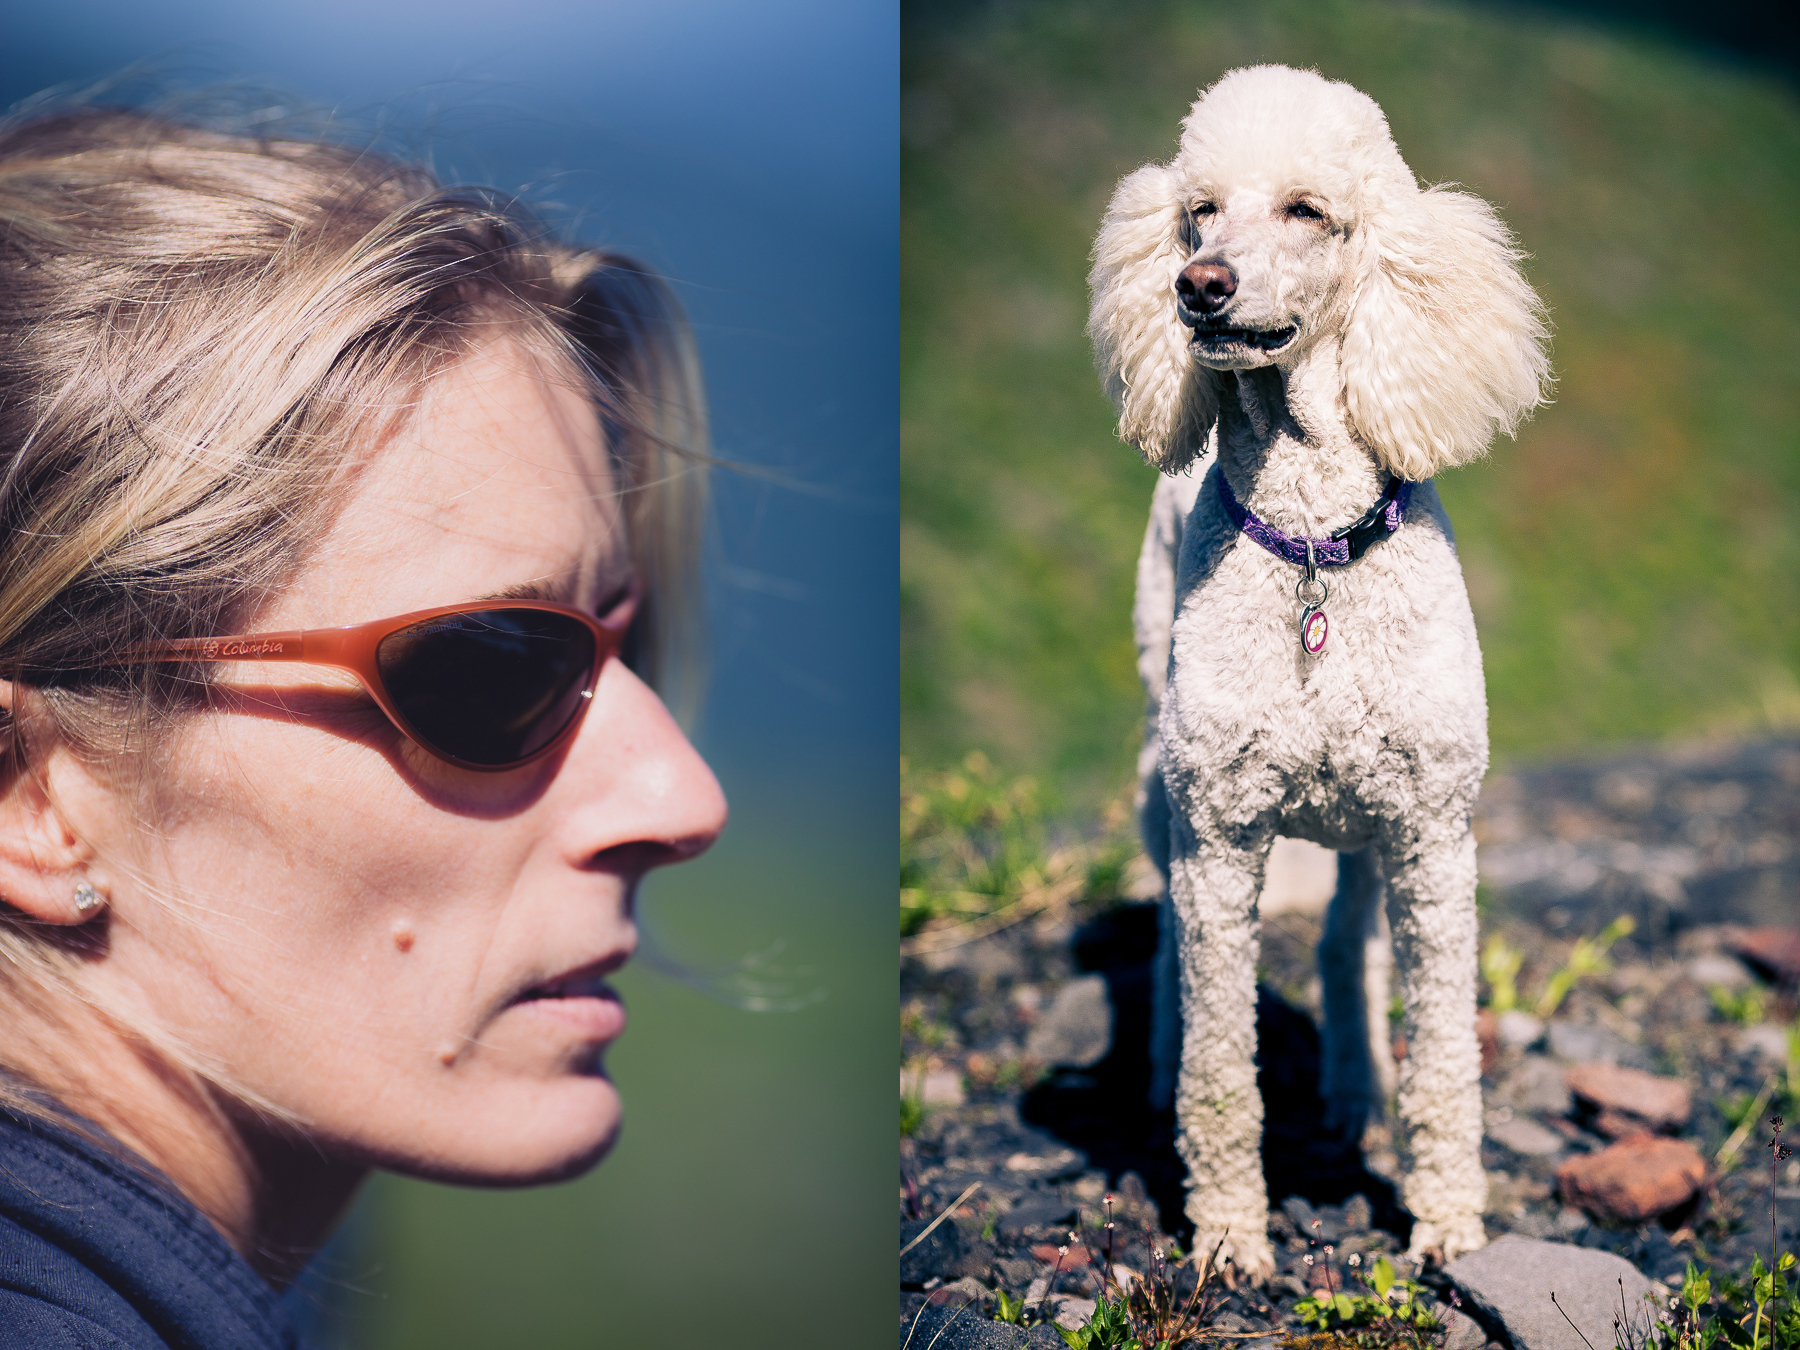 Erin on the left and her inimitable poodle Sasha on the right.